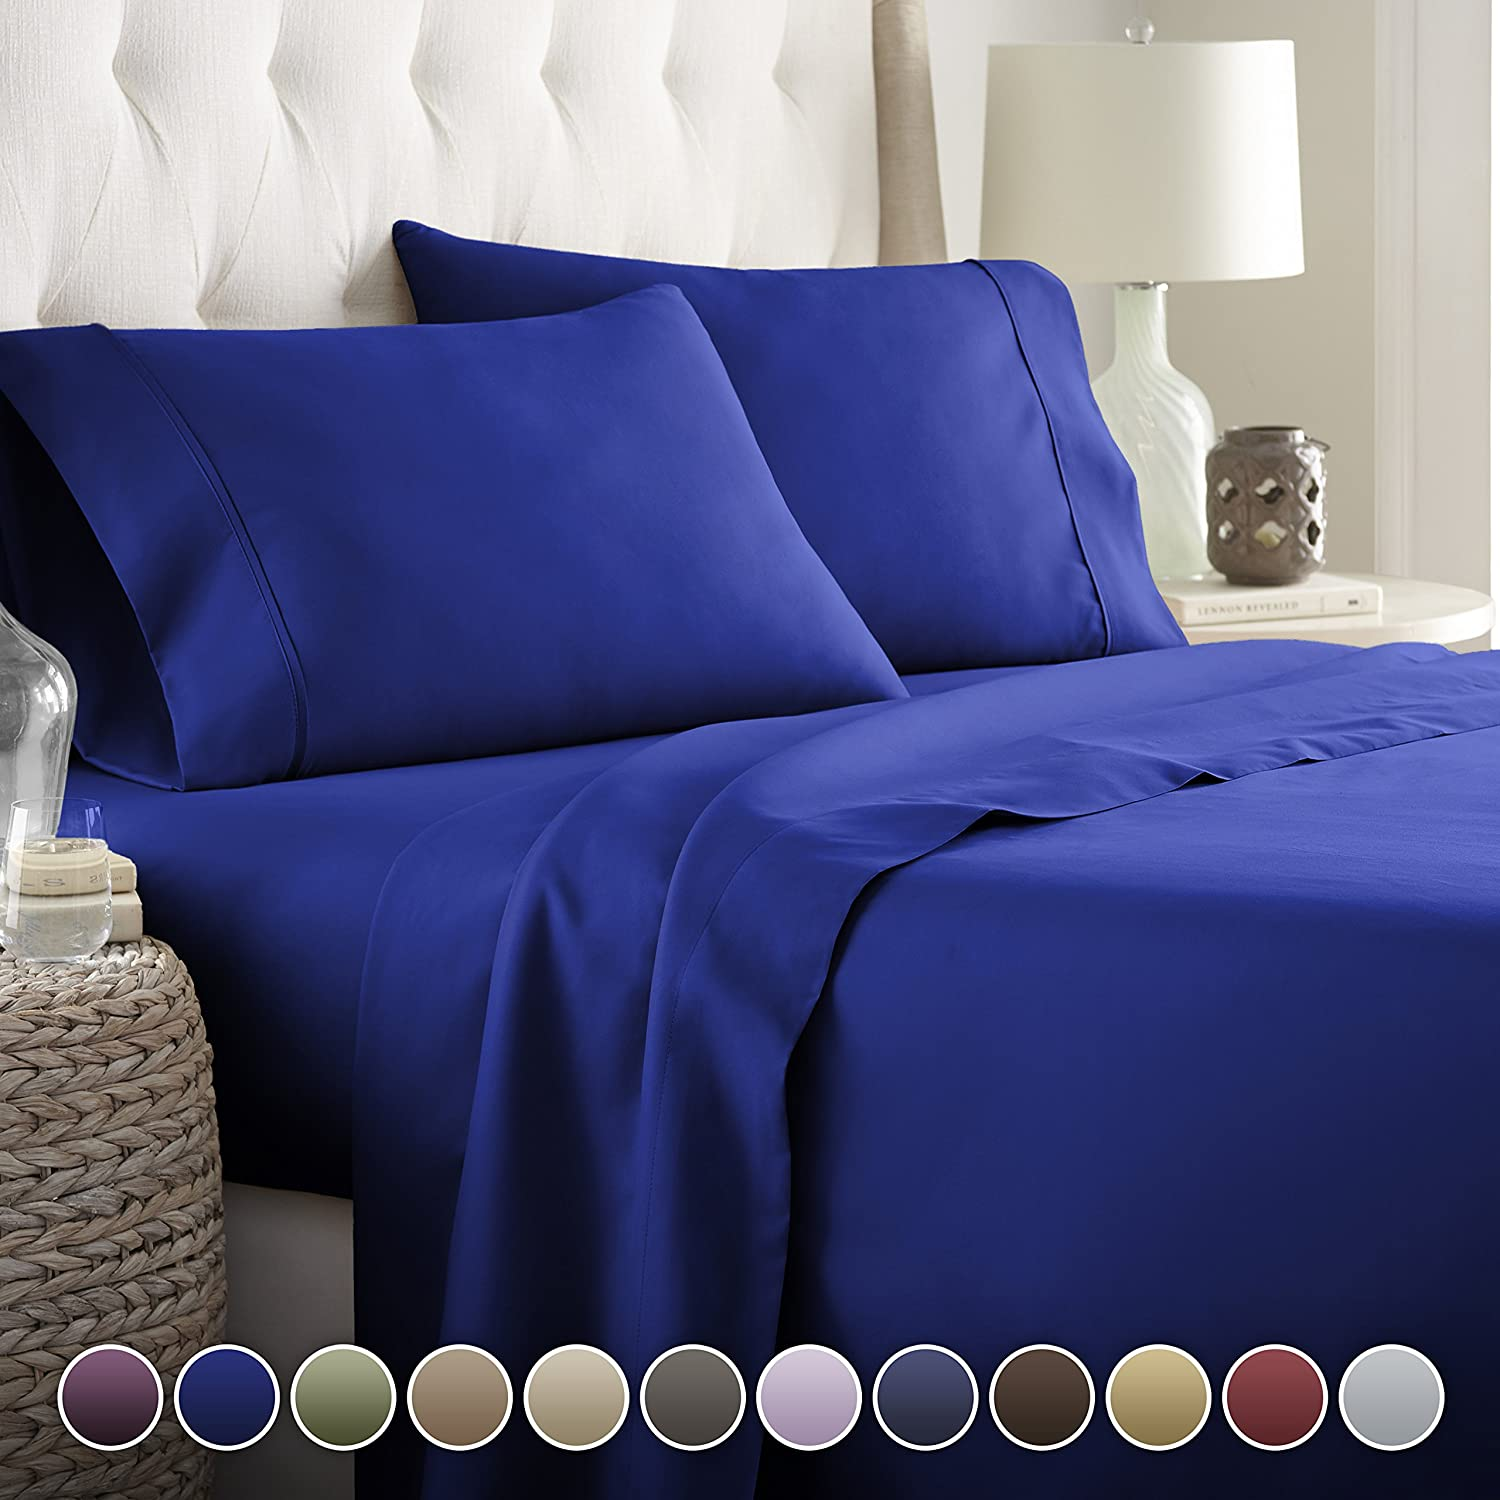 Hotel Luxury Bed Sheets Set Today! On Amazon Bedding 1800 Series Platinum Collection-100%!Deep Pocket,Wrinkle & Fade Resistant Soft (Full,Royal Blue)